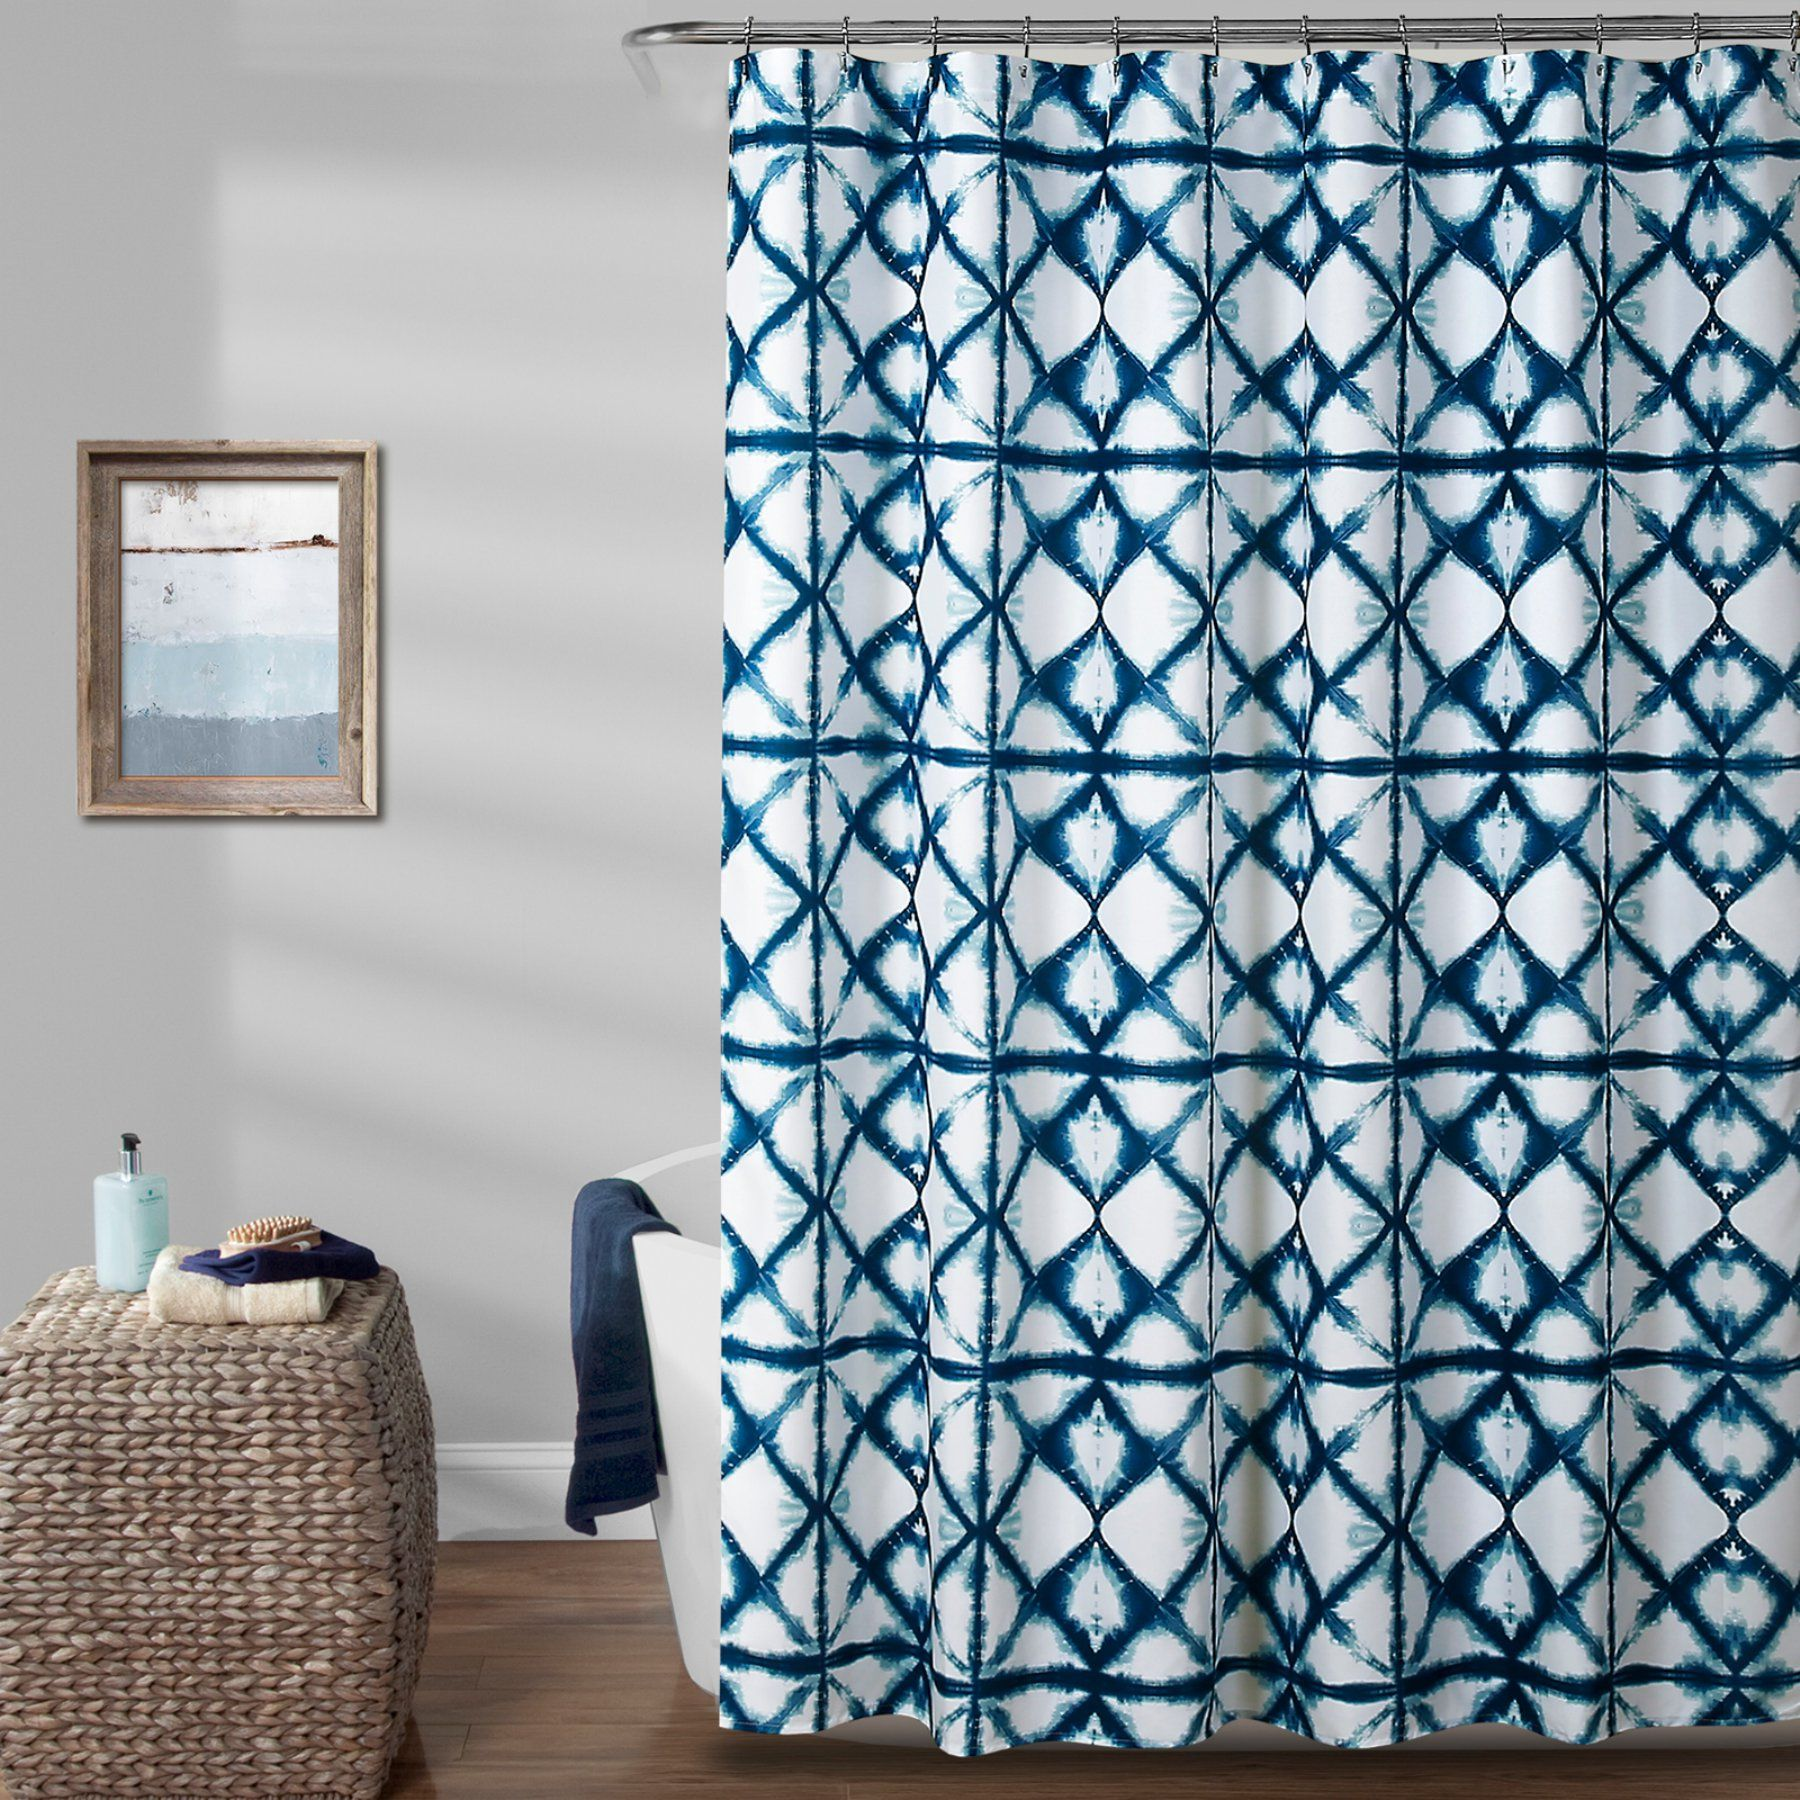 L shaped window curtain ideas  lush decor geo shibori polyester shower curtain in   products